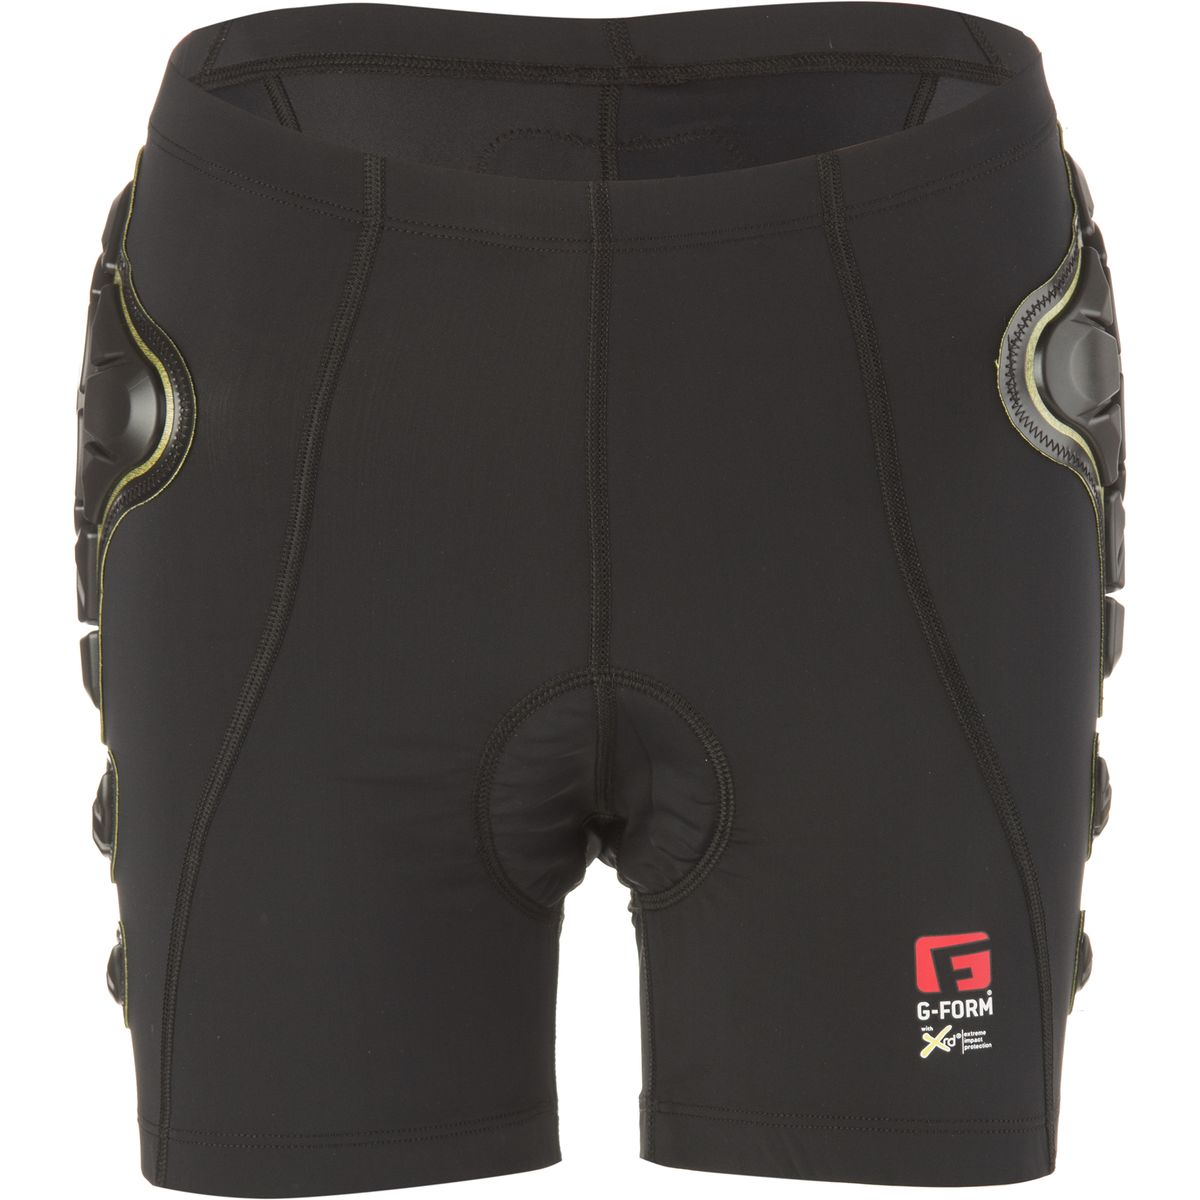 G Form Pro B Bike Compression Shorts Women S Competitive Cyclist